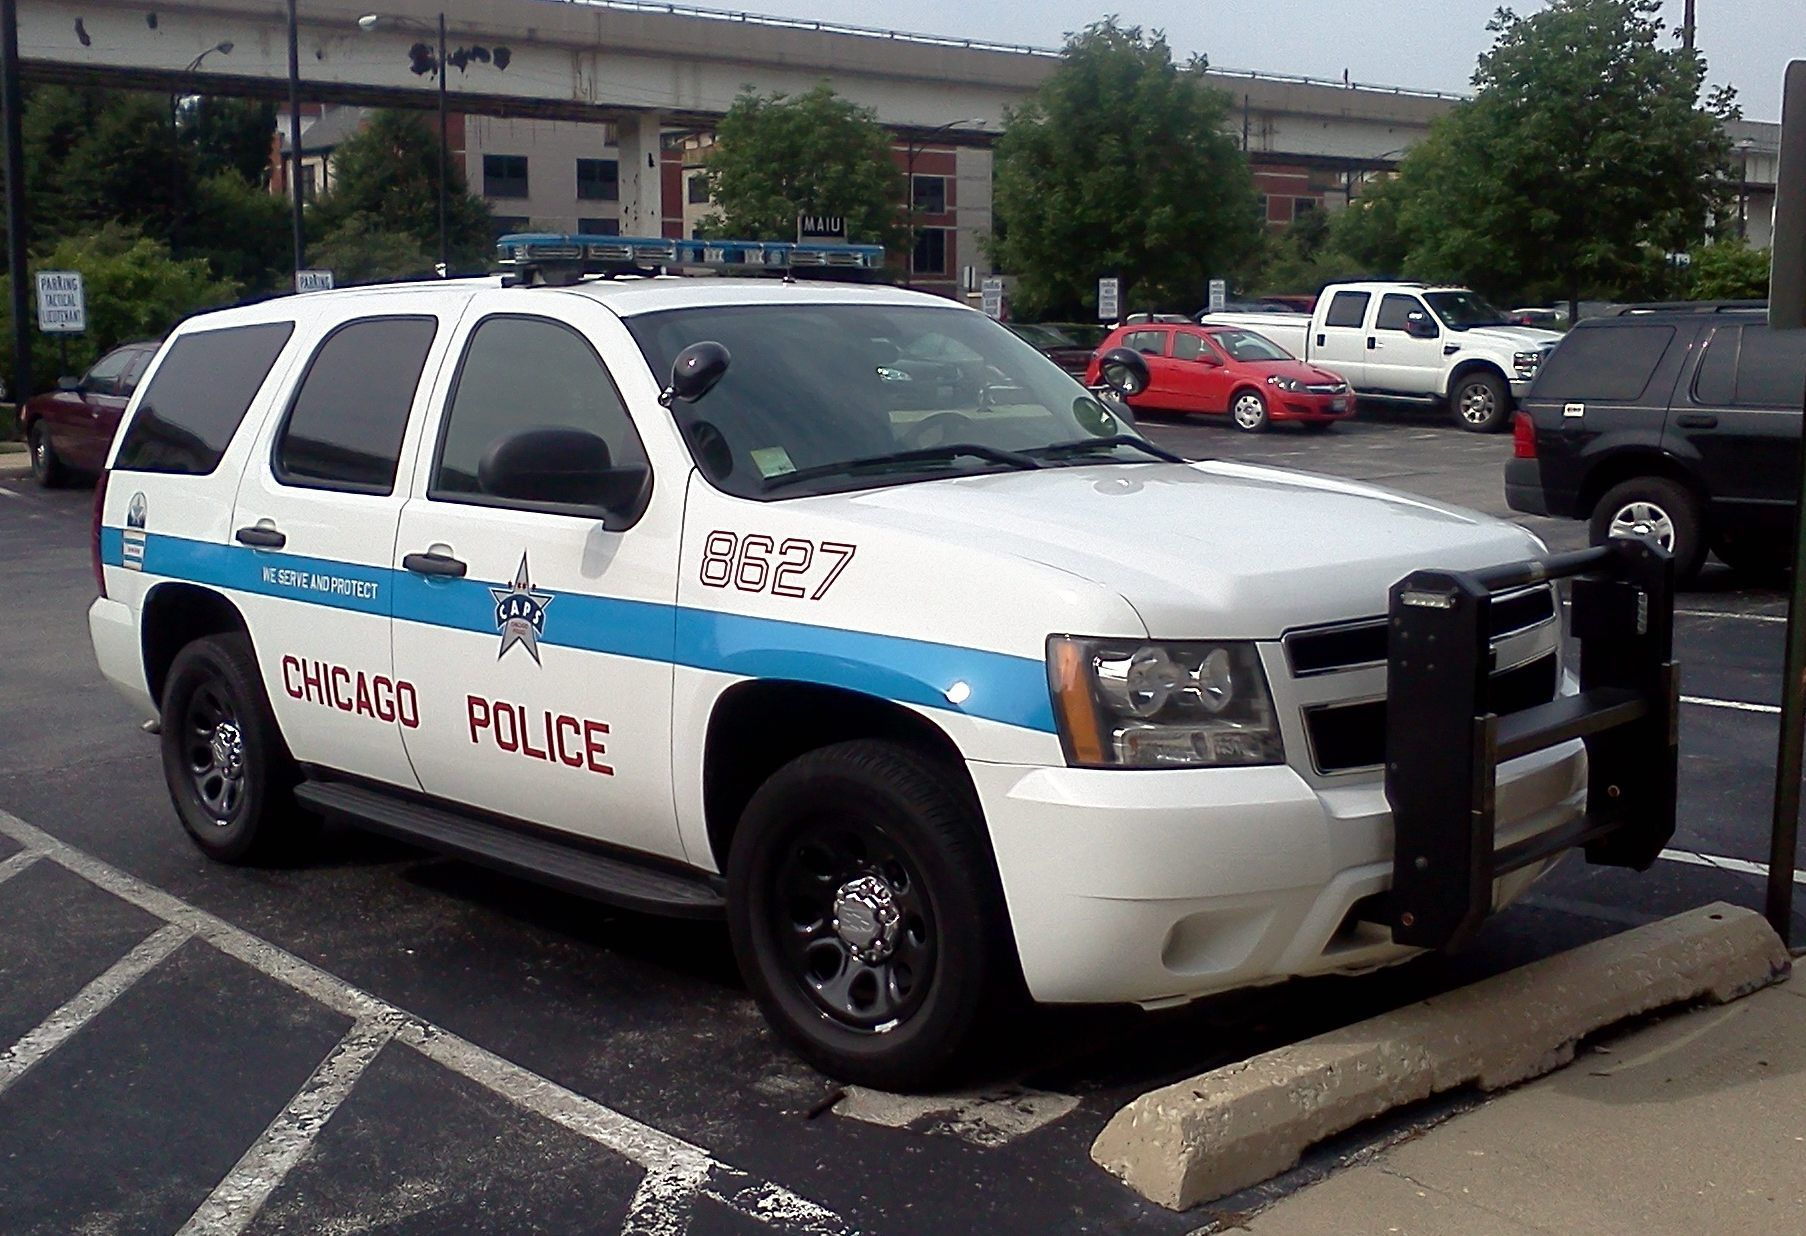 cpd tahoe chicago police cars pinterest chicago pd chevy and chicago. Black Bedroom Furniture Sets. Home Design Ideas